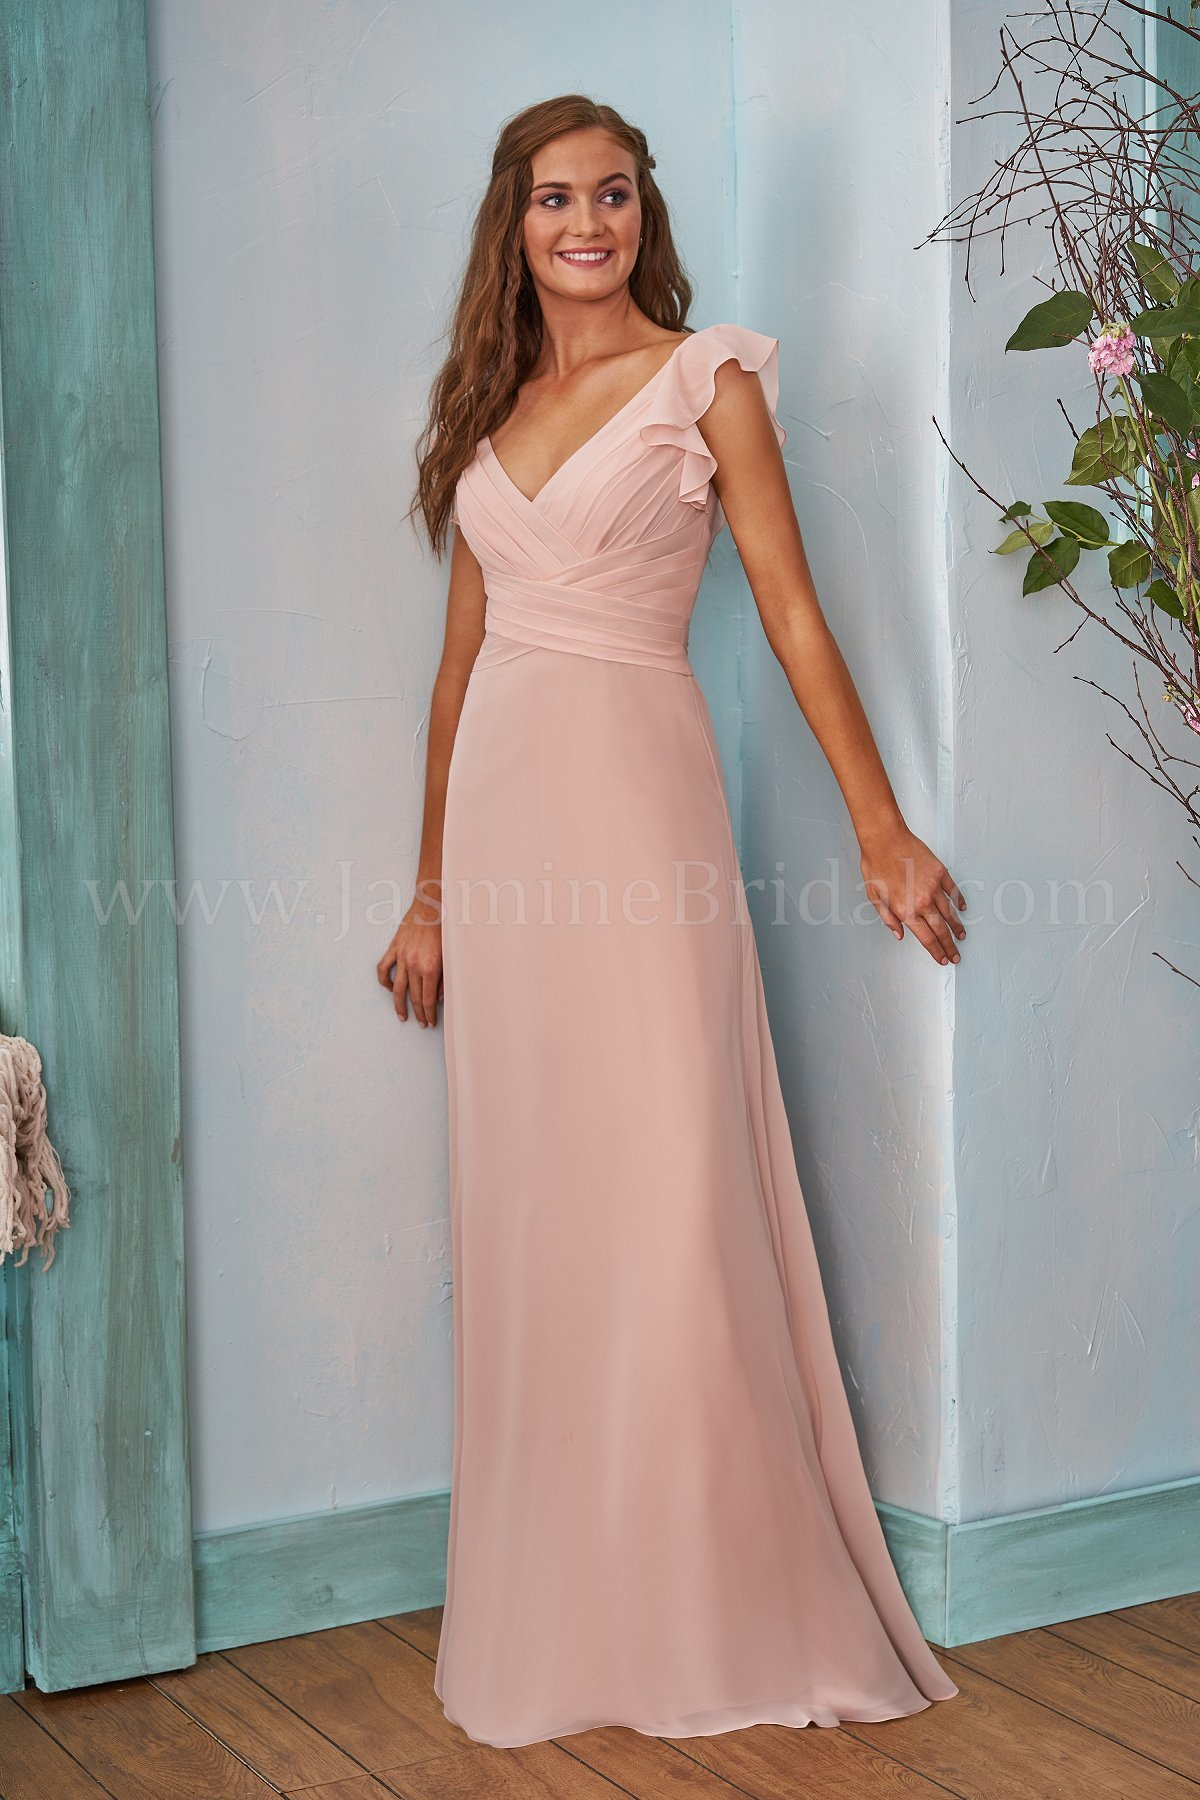 bridesmaid-dresses-B203002-F